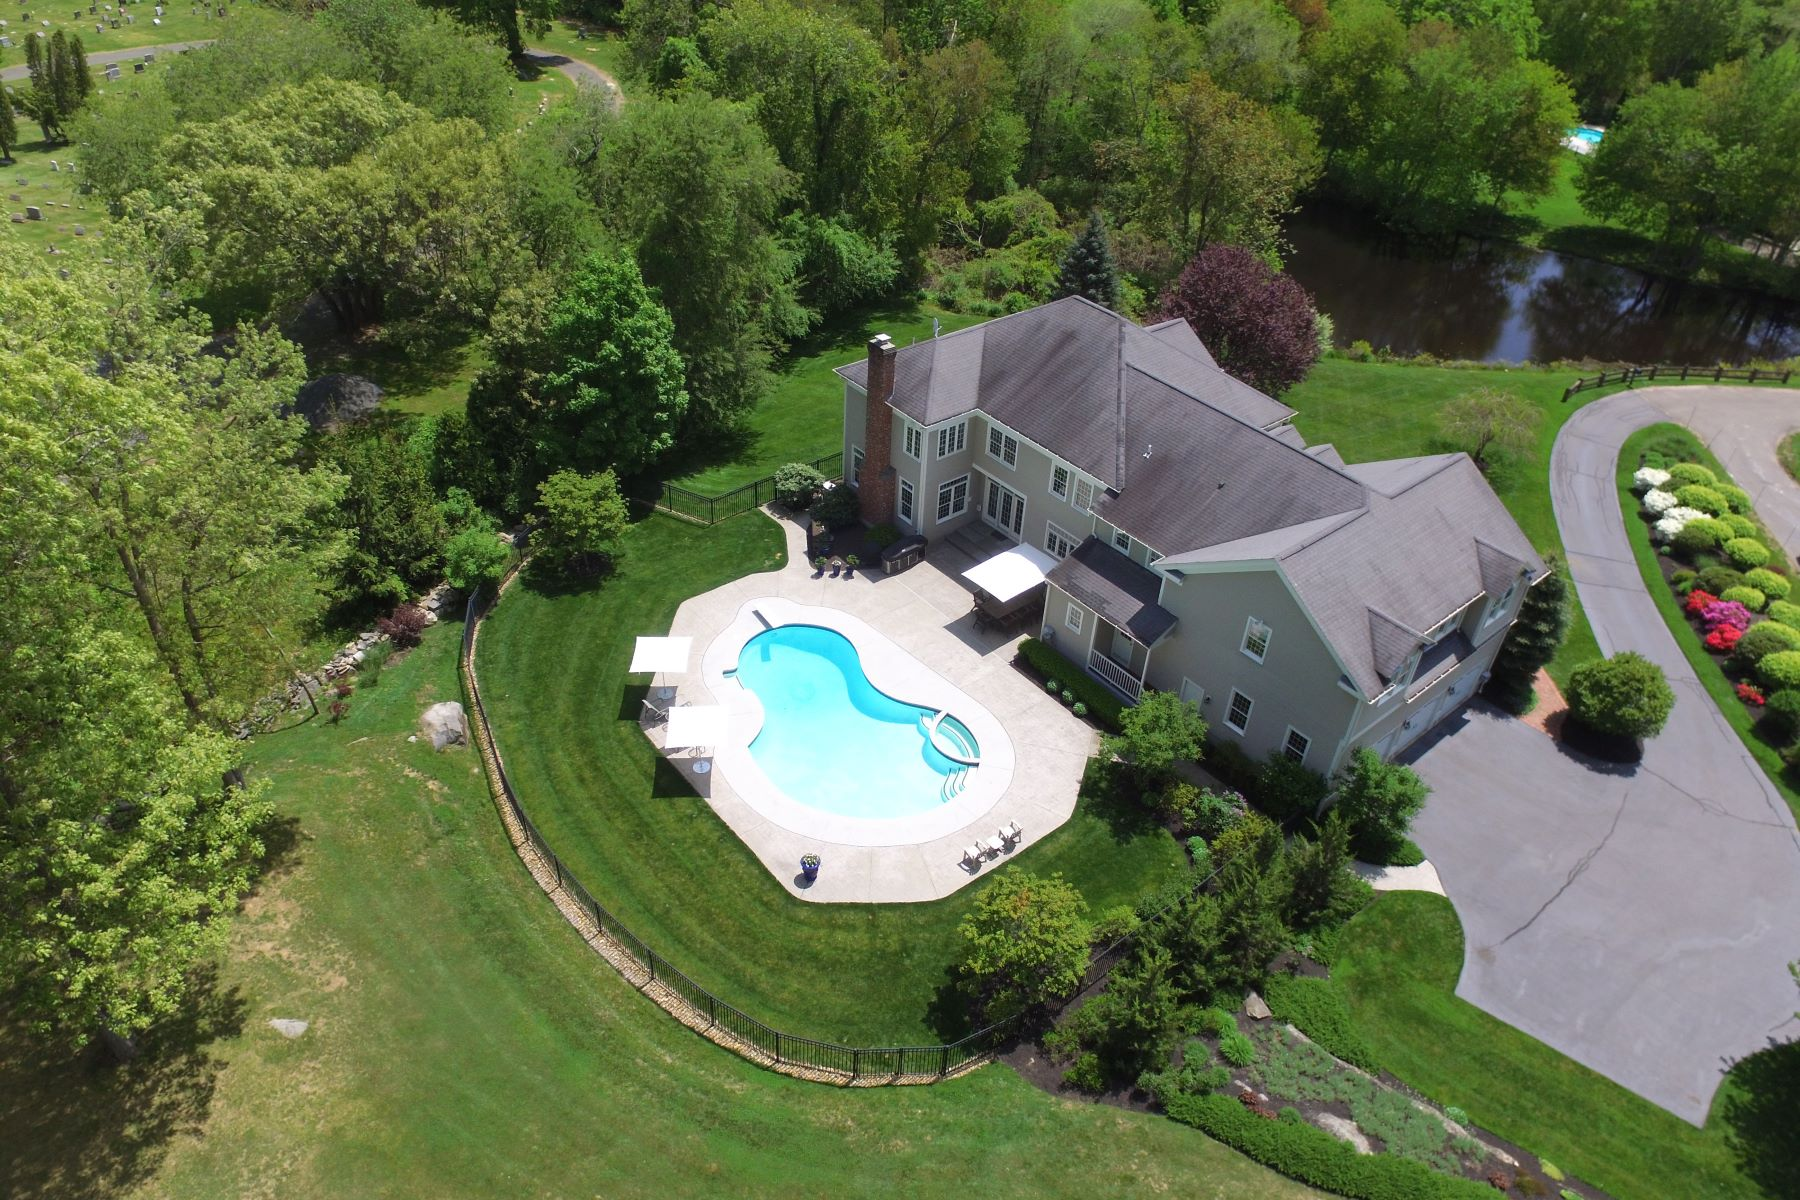 Single Family Homes for Sale at Peter Smith built home 383 Boston Post Road Madison, Connecticut 06443 United States